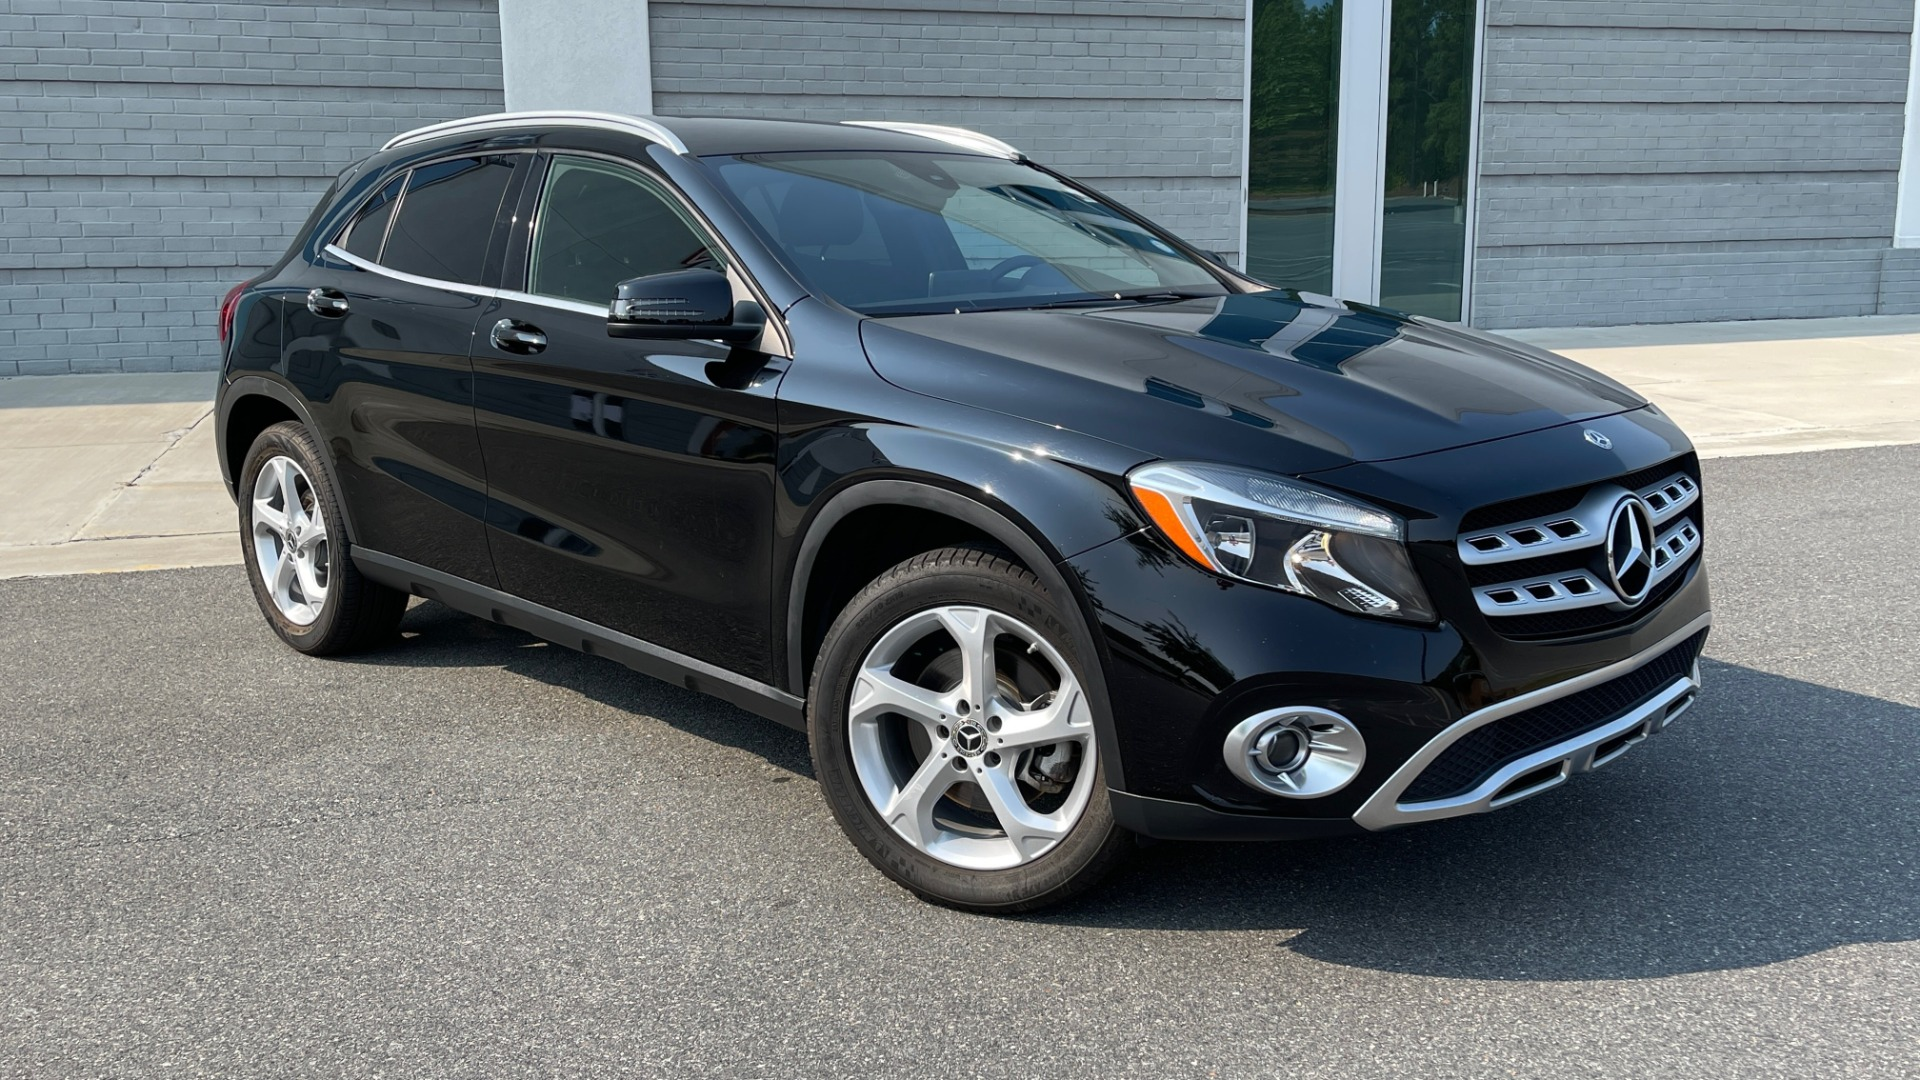 Used 2018 Mercedes-Benz GLA 250 SUV / GARMIN MAP PILOT / 18IN WHEELS / REARVIEW for sale $26,995 at Formula Imports in Charlotte NC 28227 4